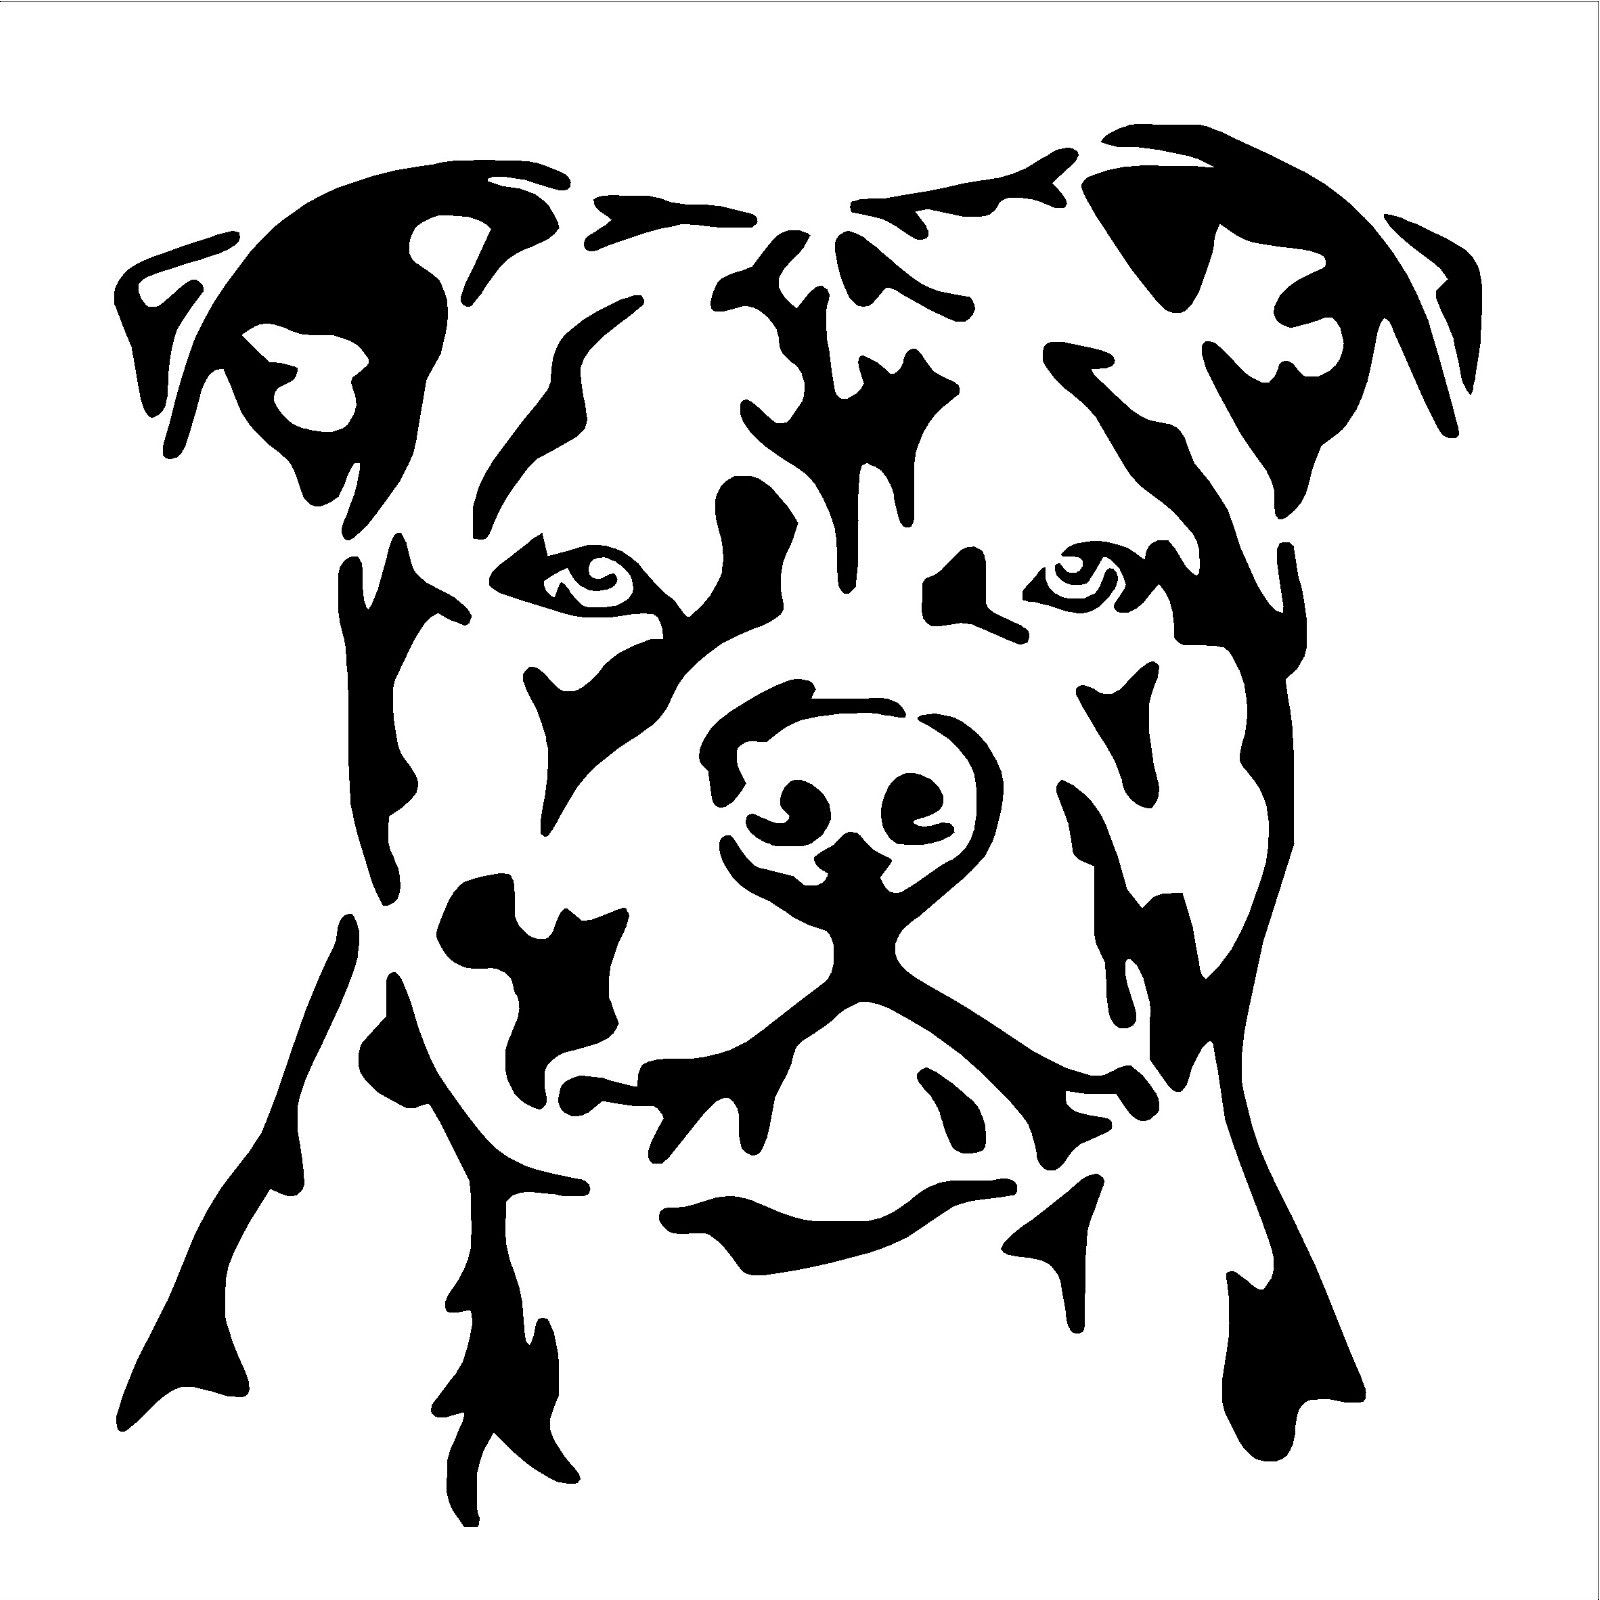 Staffordshire Bull Terrier Dog Vinyl Wall Art Sticker Decal Staffy Throughout Popular Pitbull Wall Art (View 9 of 15)